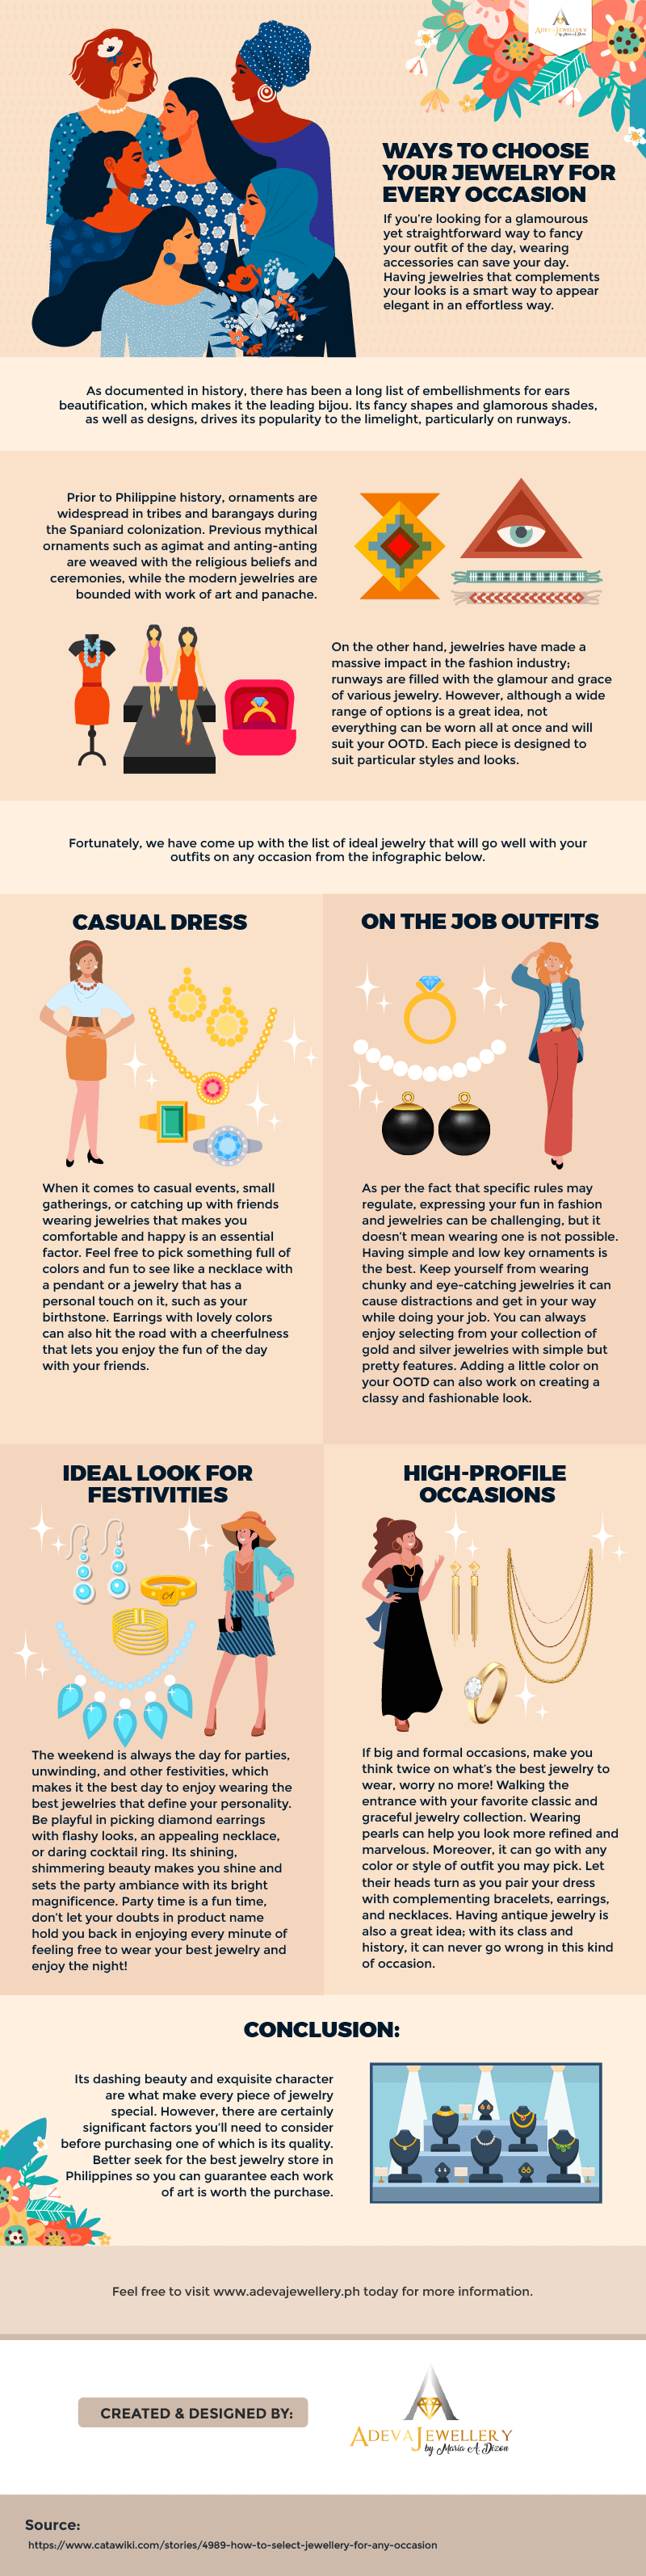 Ways to Choose Jewelry for Occasions